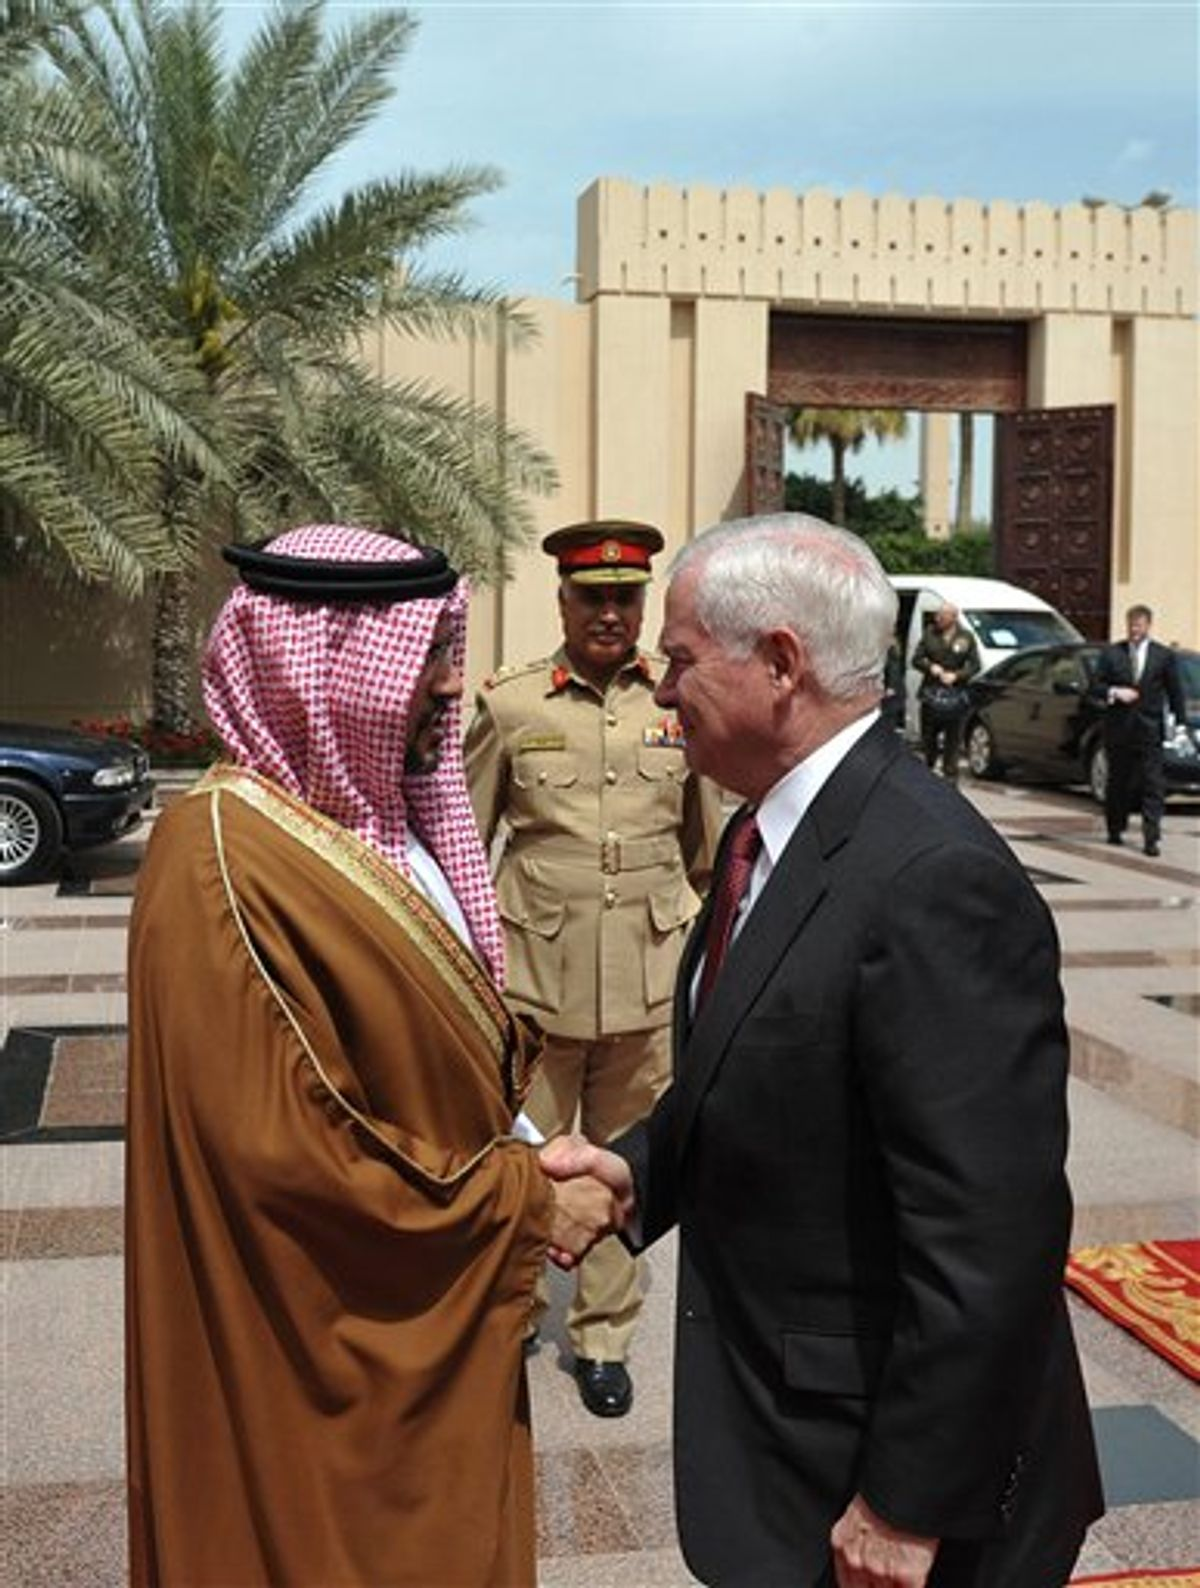 U.S. Defense Secretary Robert Gates, right, is greeted by Bahrain's Crown Prince Salman bin Hamad al-Khalifa as he arrives for a meeting at Al-Zahar Palace in Manama Saturday, March 12, 2011. Gates is meeting in Bahrain with the kingdom's top rulers, who are facing growing demands for more political freedom.  (AP Photo/ Mandal Ngan, pool) (AP)